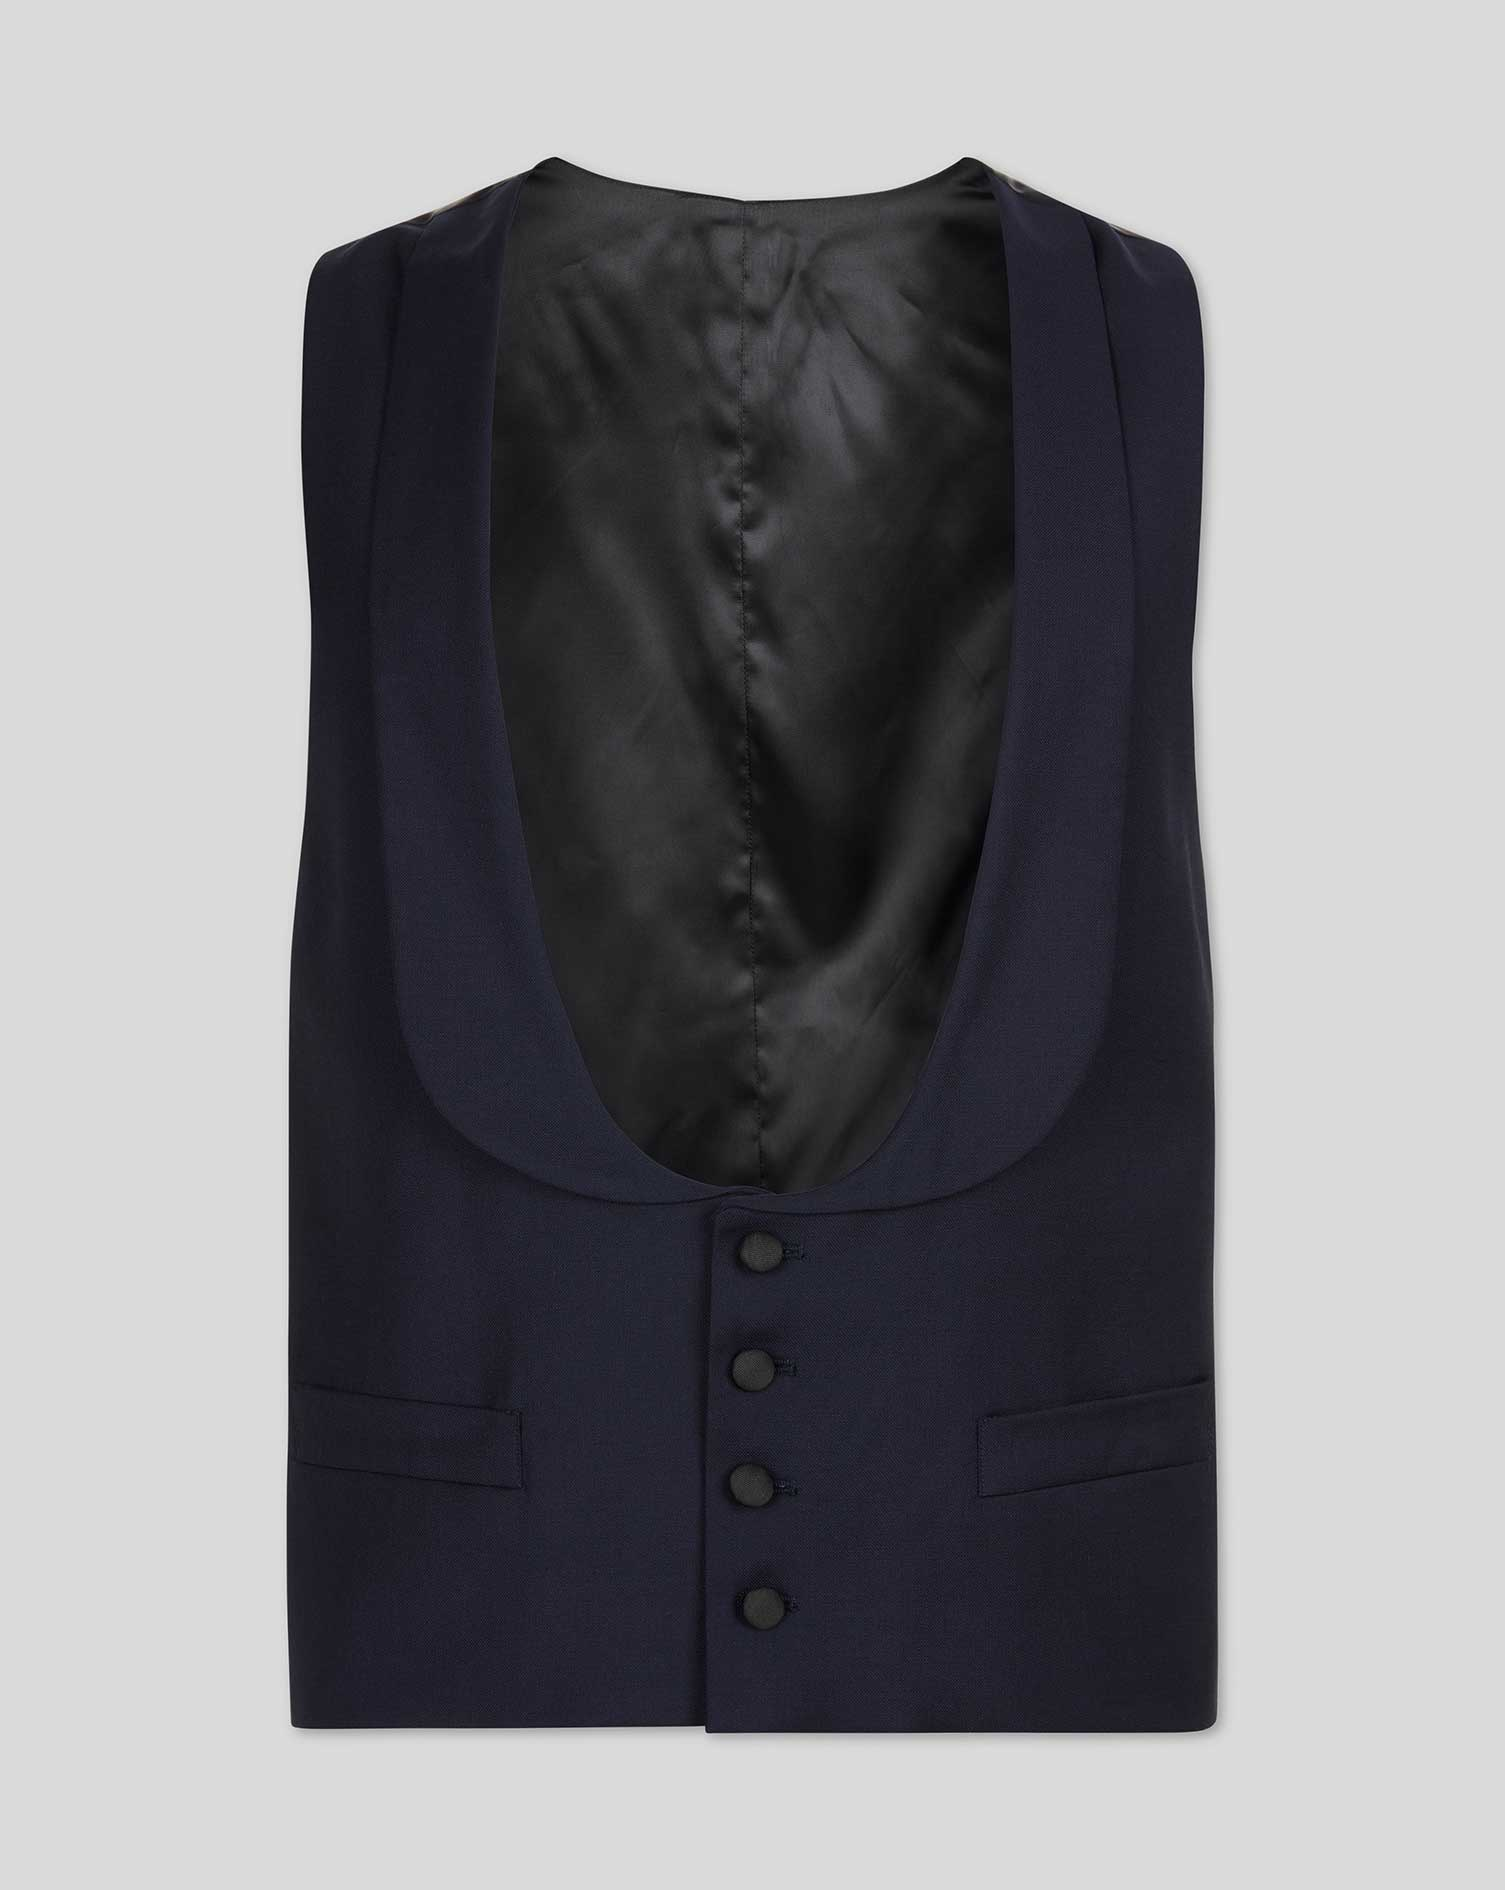 Navy adjustable fit shawl collar tuxedo vest